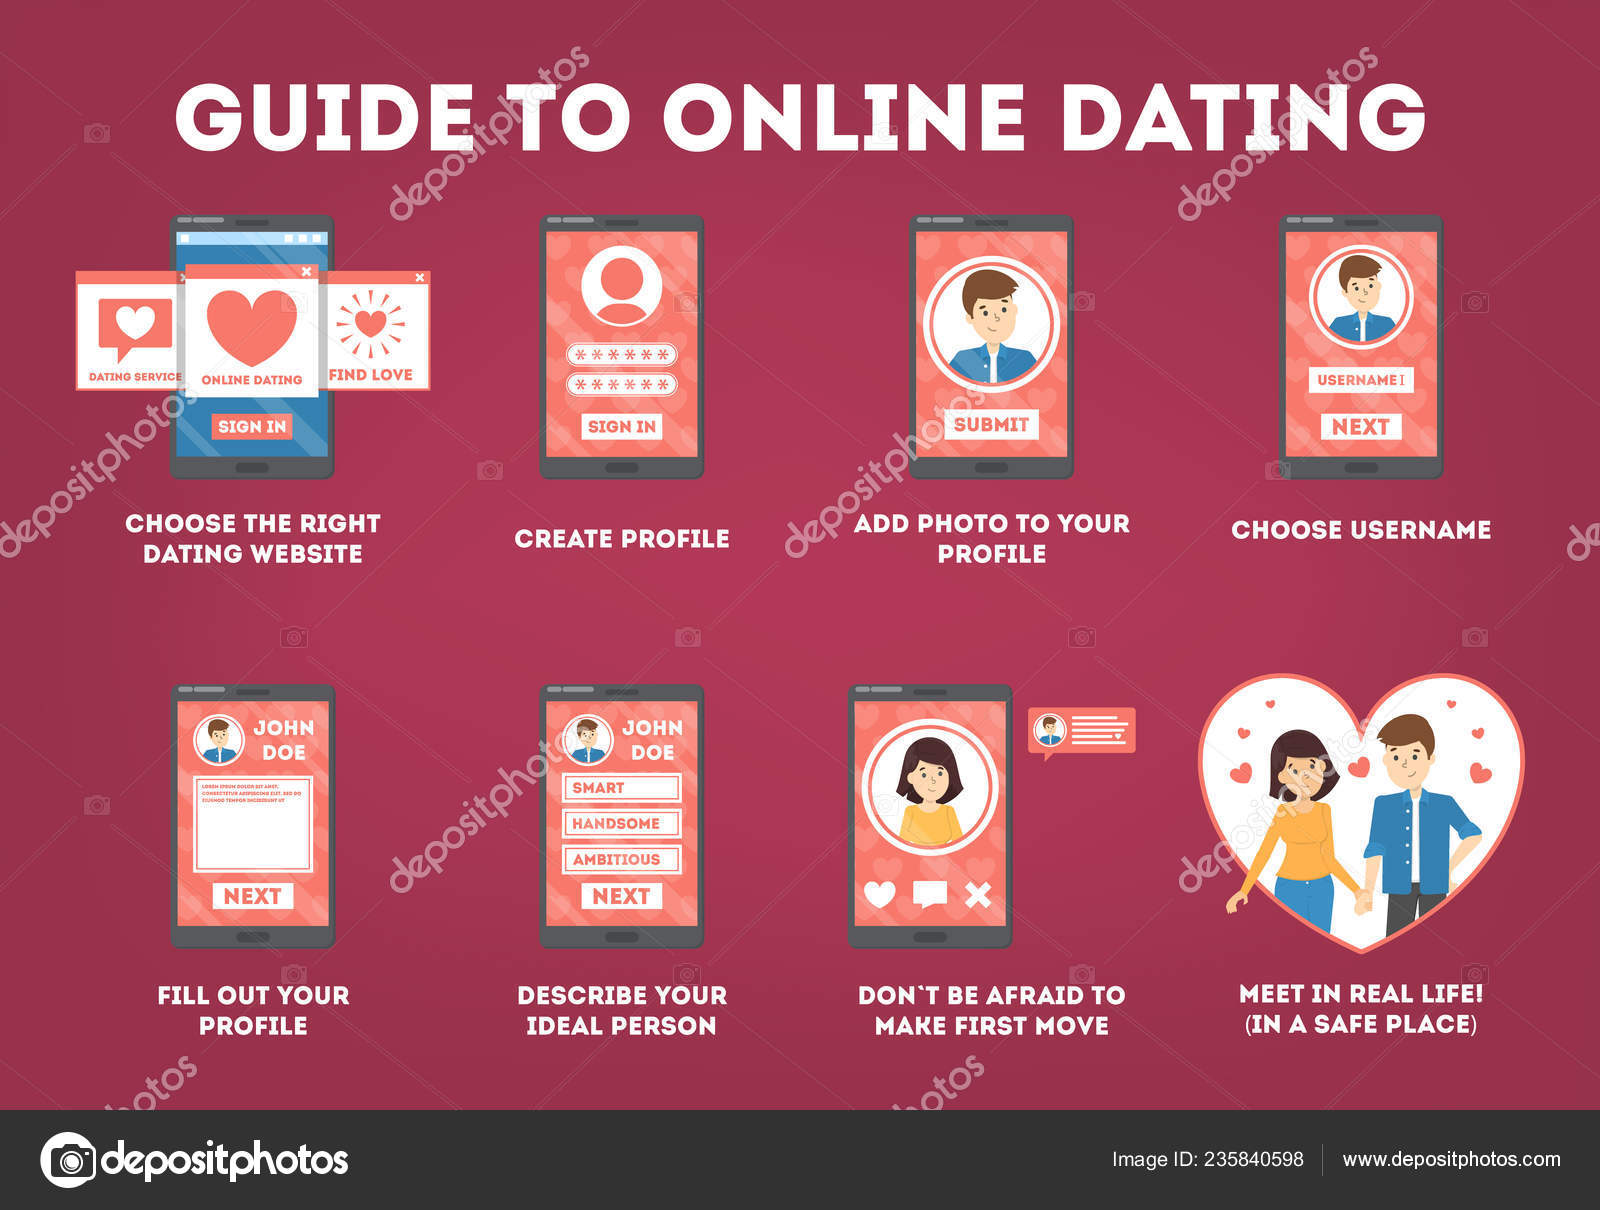 how to choose a name for online dating